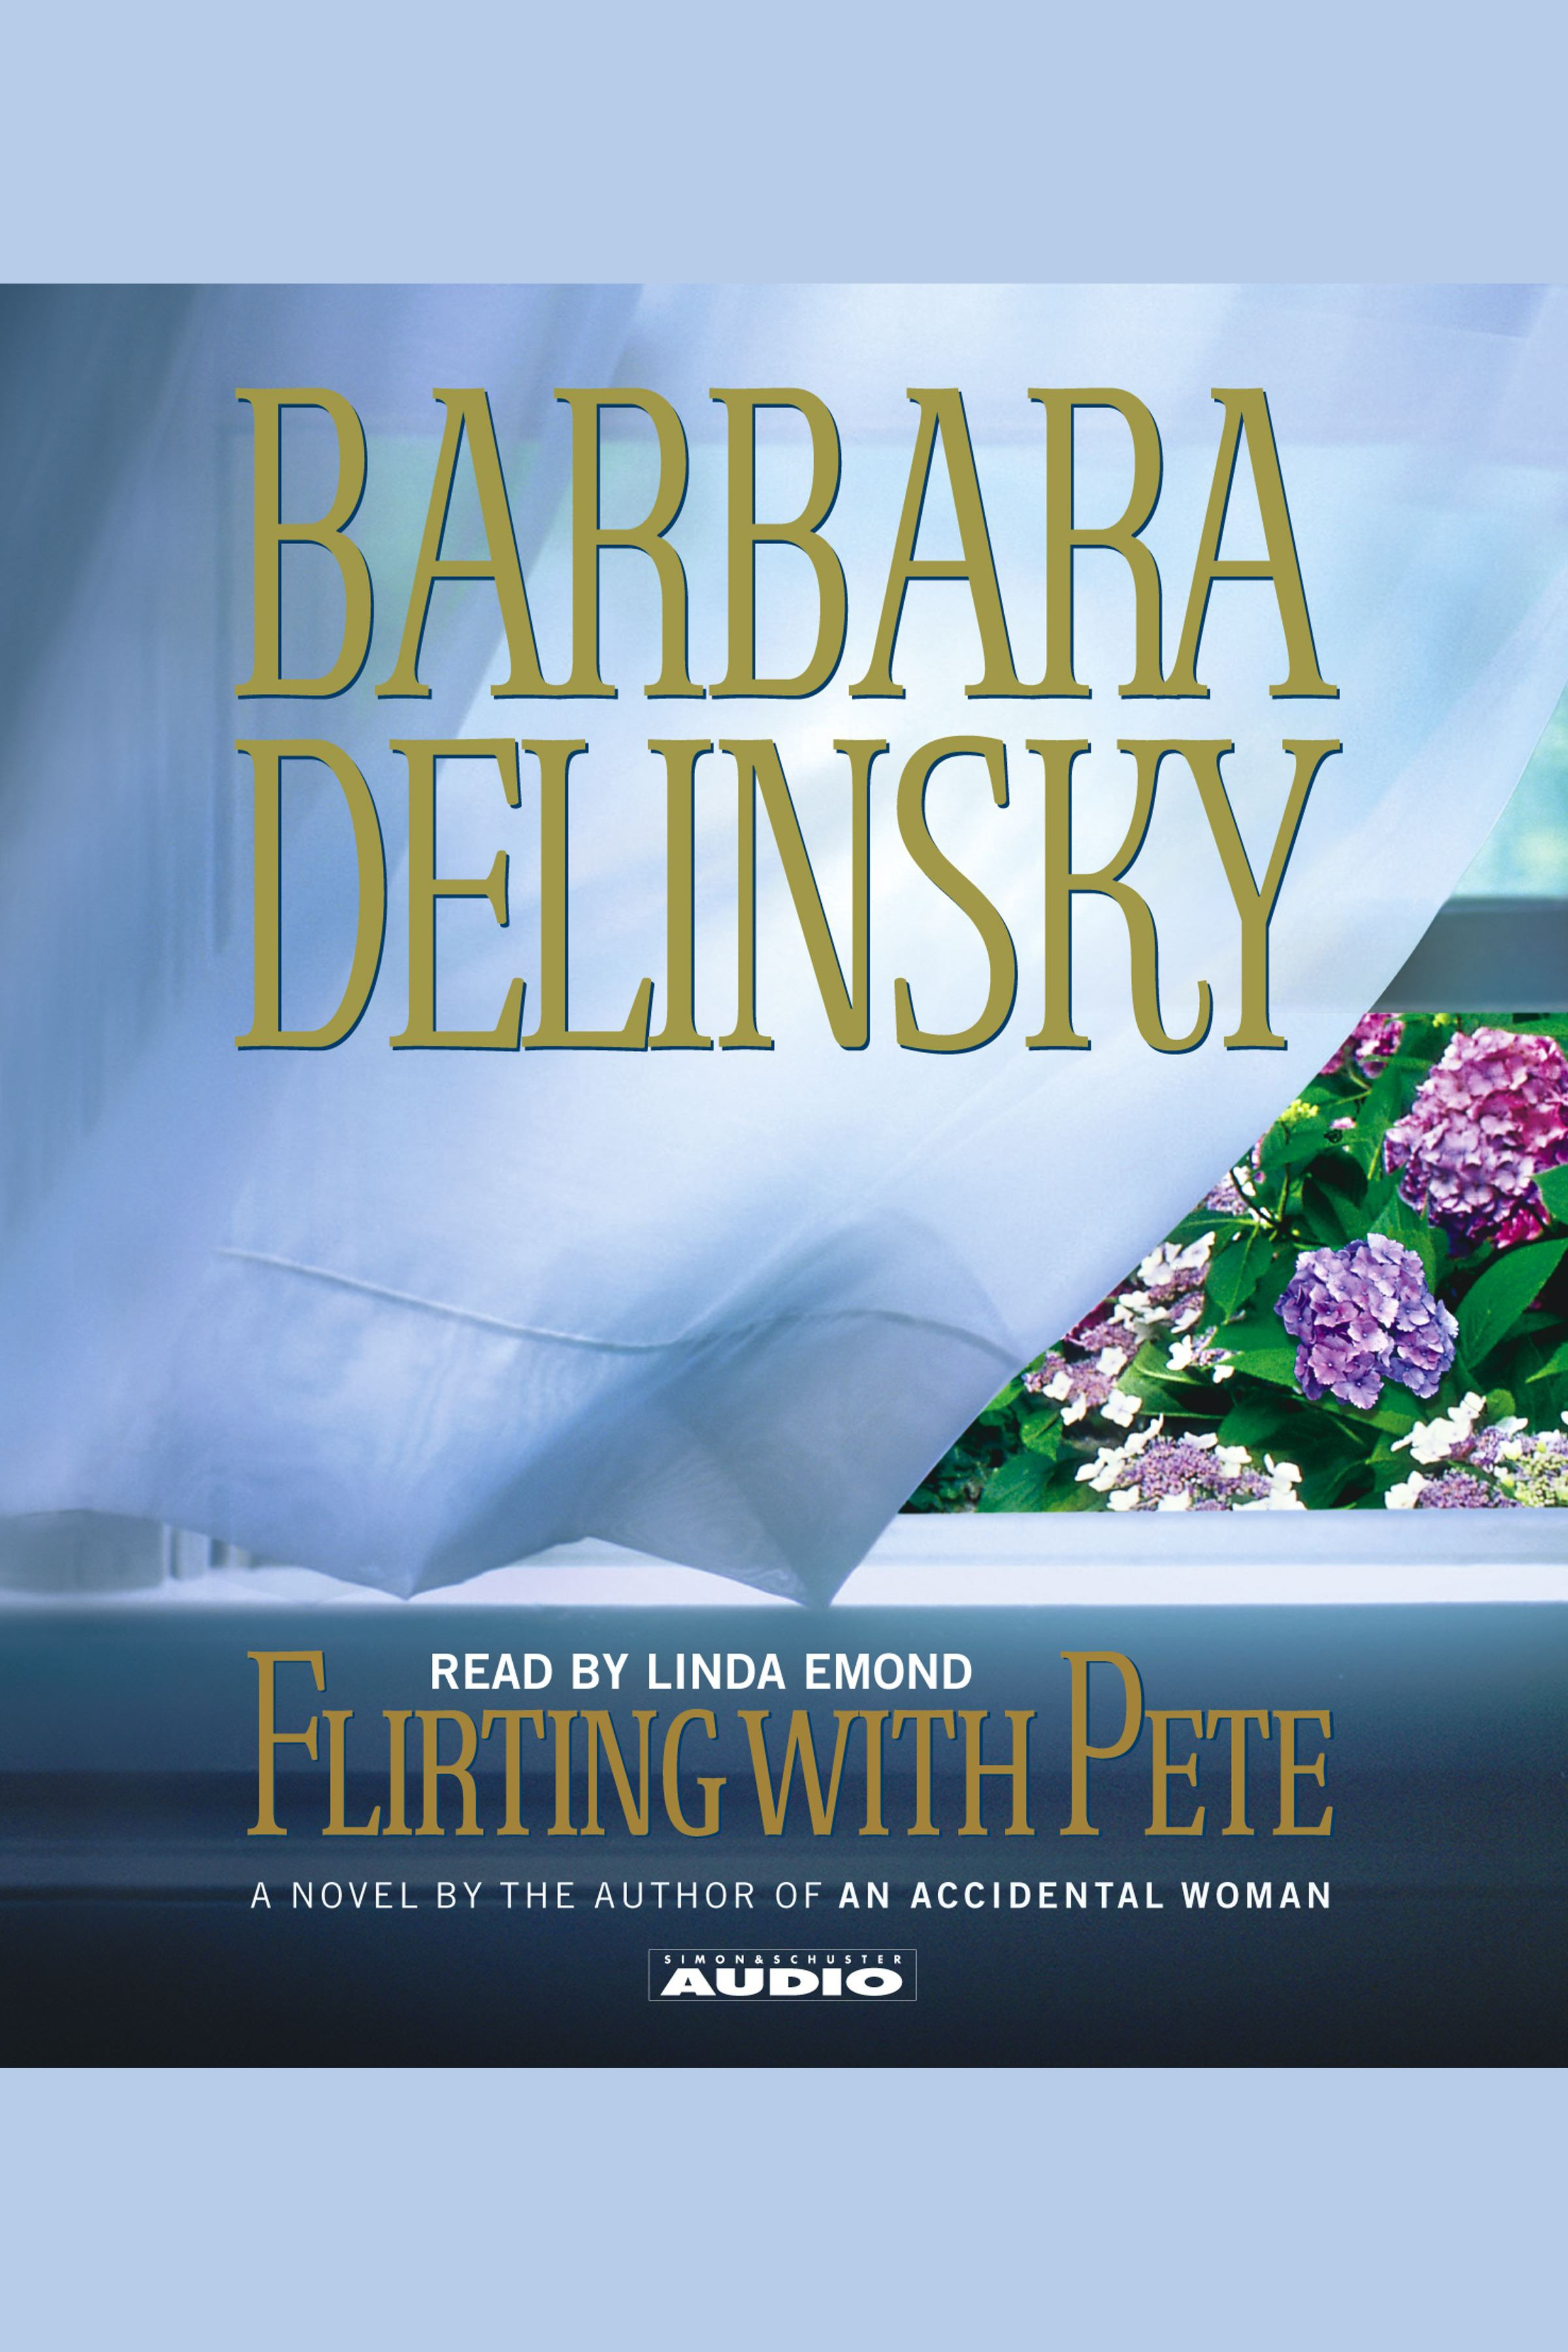 Flirting with Pete cover image